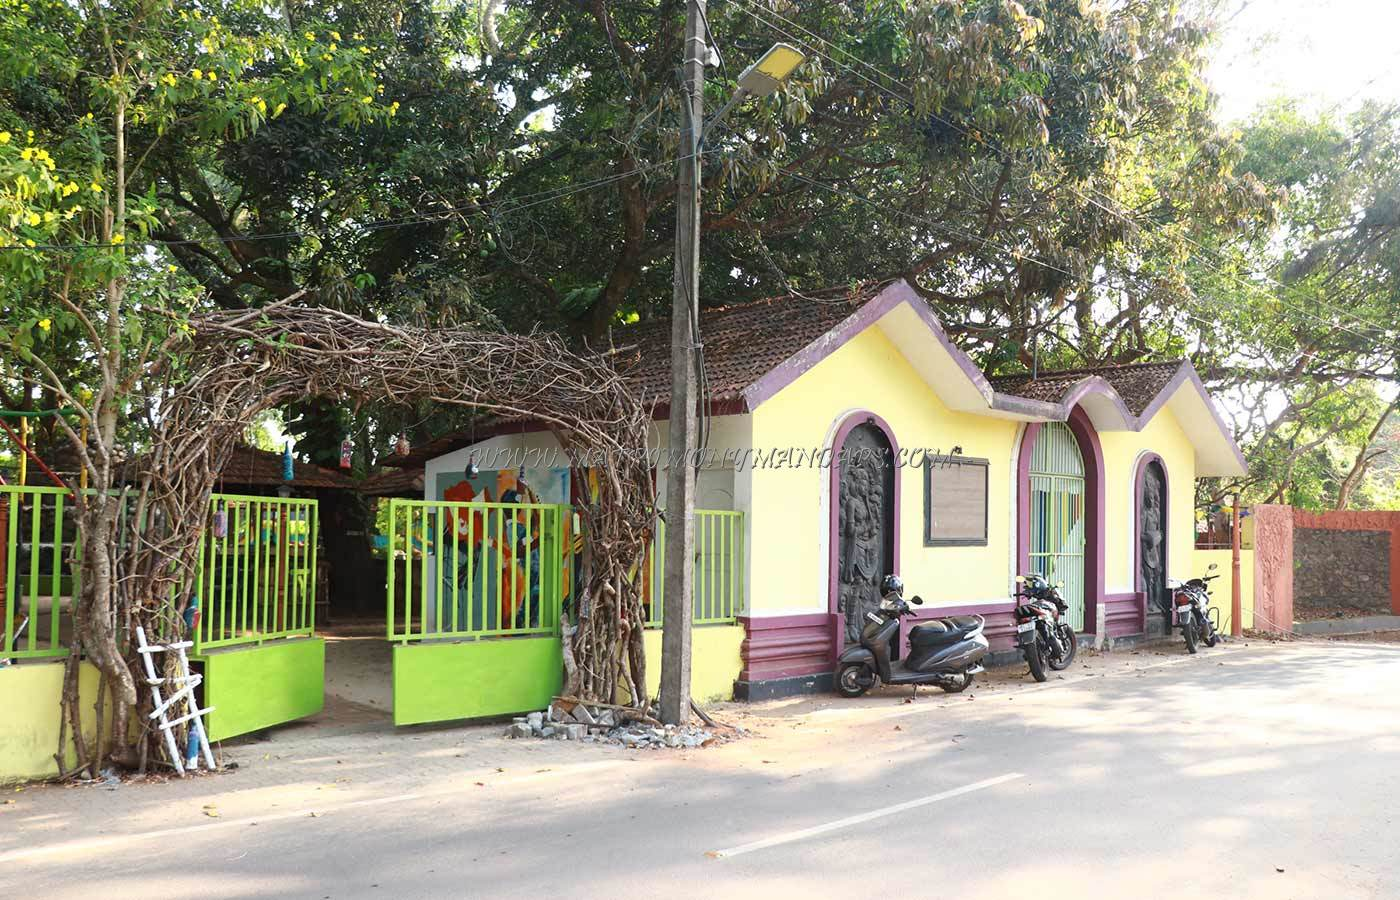 Find the availability of the Chilla Art Cafe in Alappuzha, Alappuzha and avail special offers